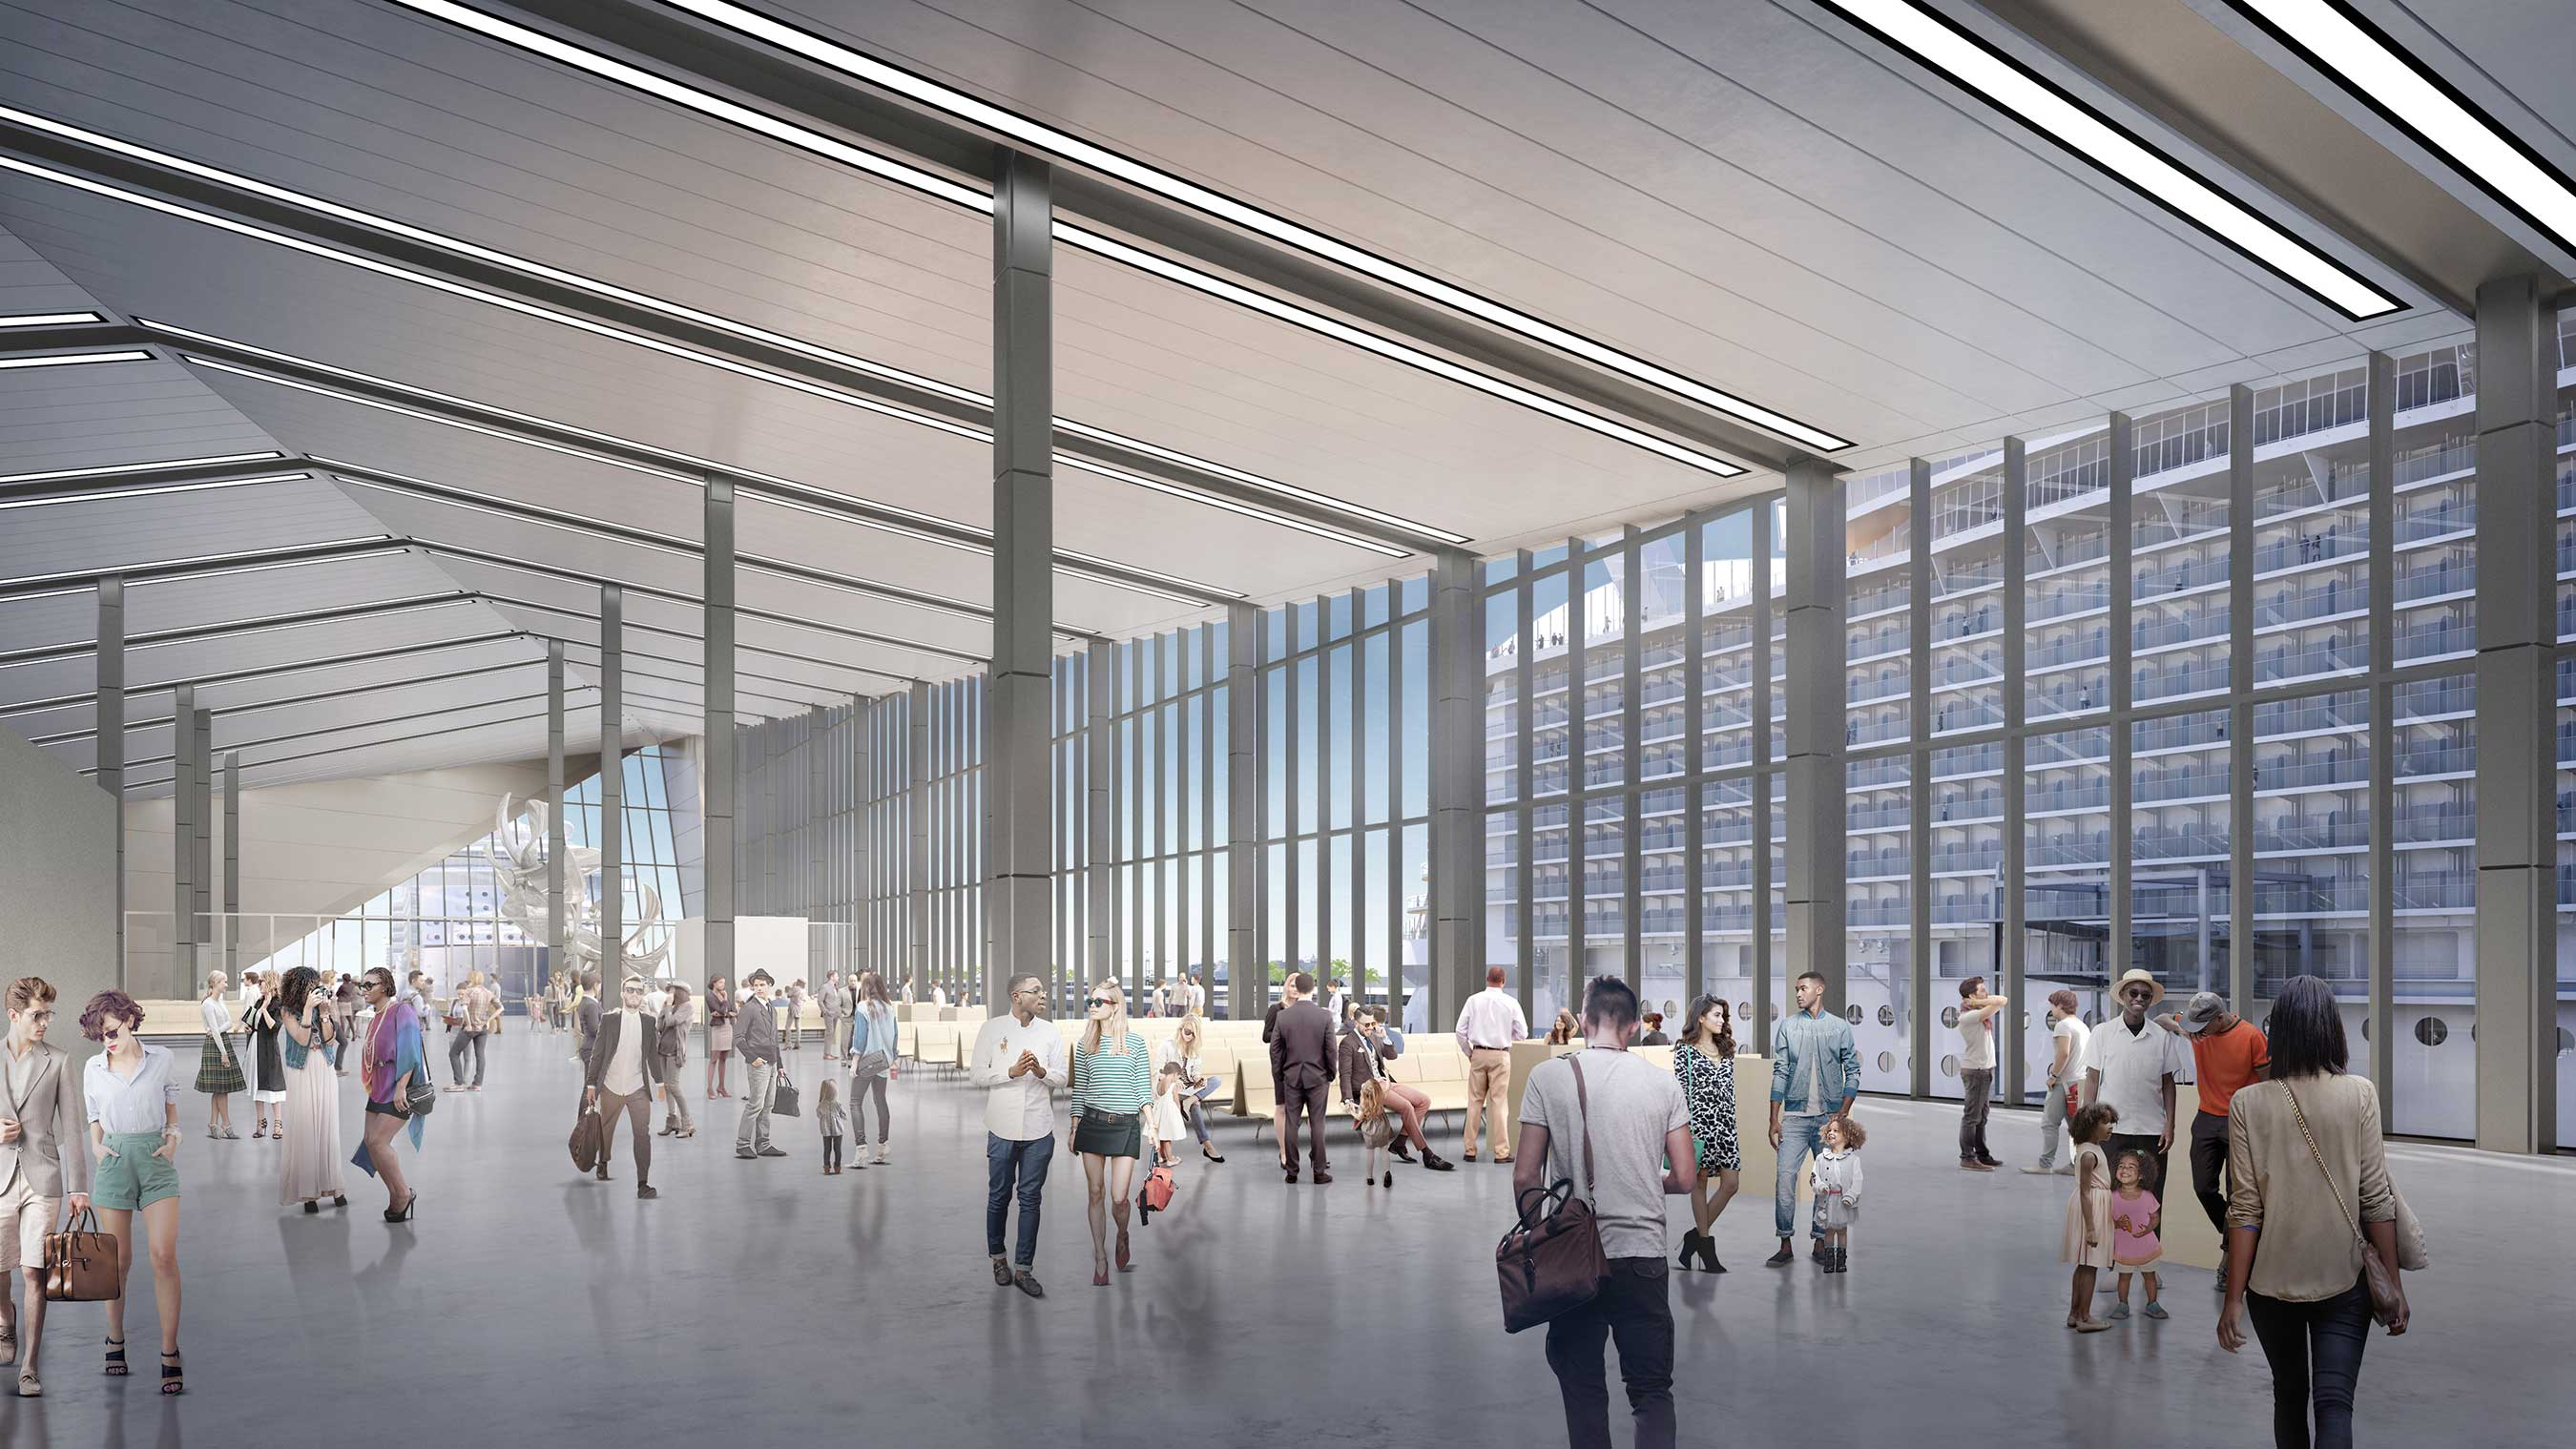 Intuitive, bold design will bring Royal Caribbean Cruises Ltd.'s (RCL) state-of-the-art terminal to life in late 2018.